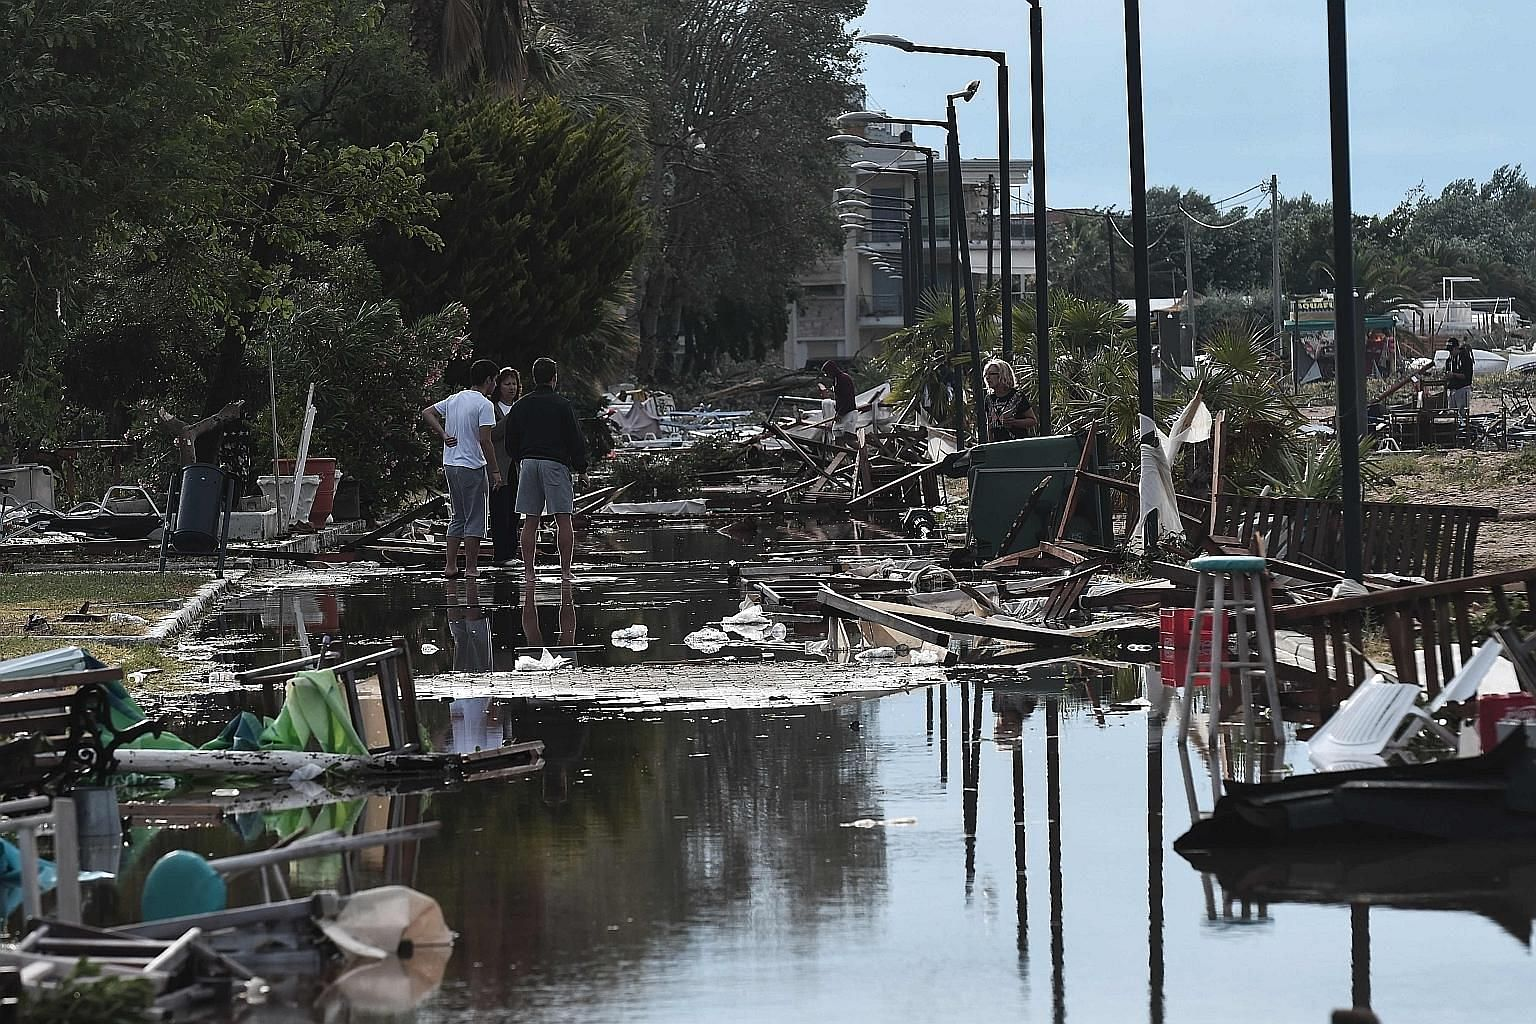 These beach bars in Chalkidiki, northern Greece, were destroyed by Wednesday's lashing storms. Officials have declared a state of emergency and army crews are working to restore electricity. PHOTO: AGENCE FRANCE-PRESSE